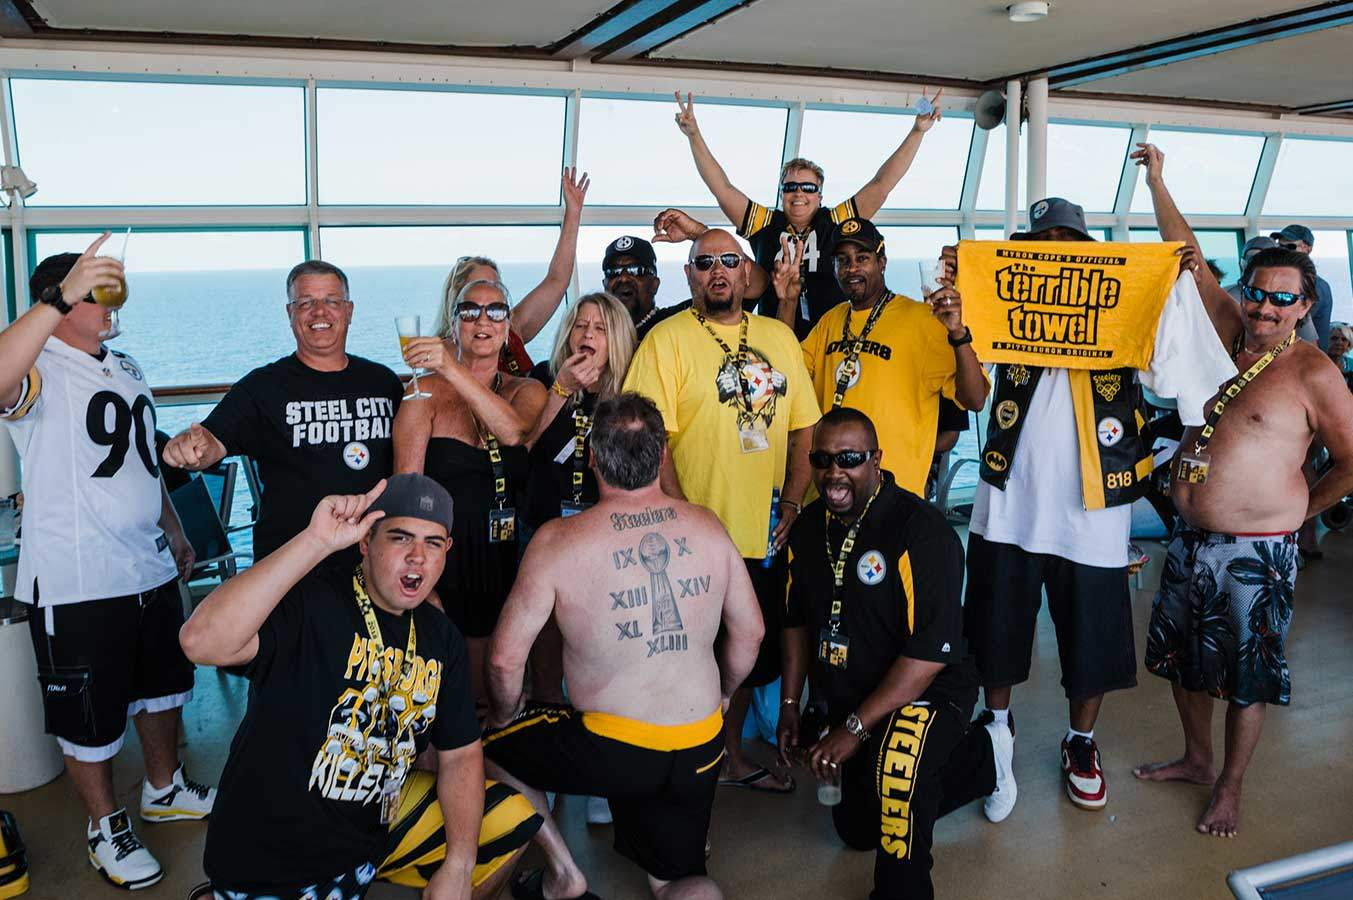 03_2018_legends_of_pittsburgh_cruise_photo